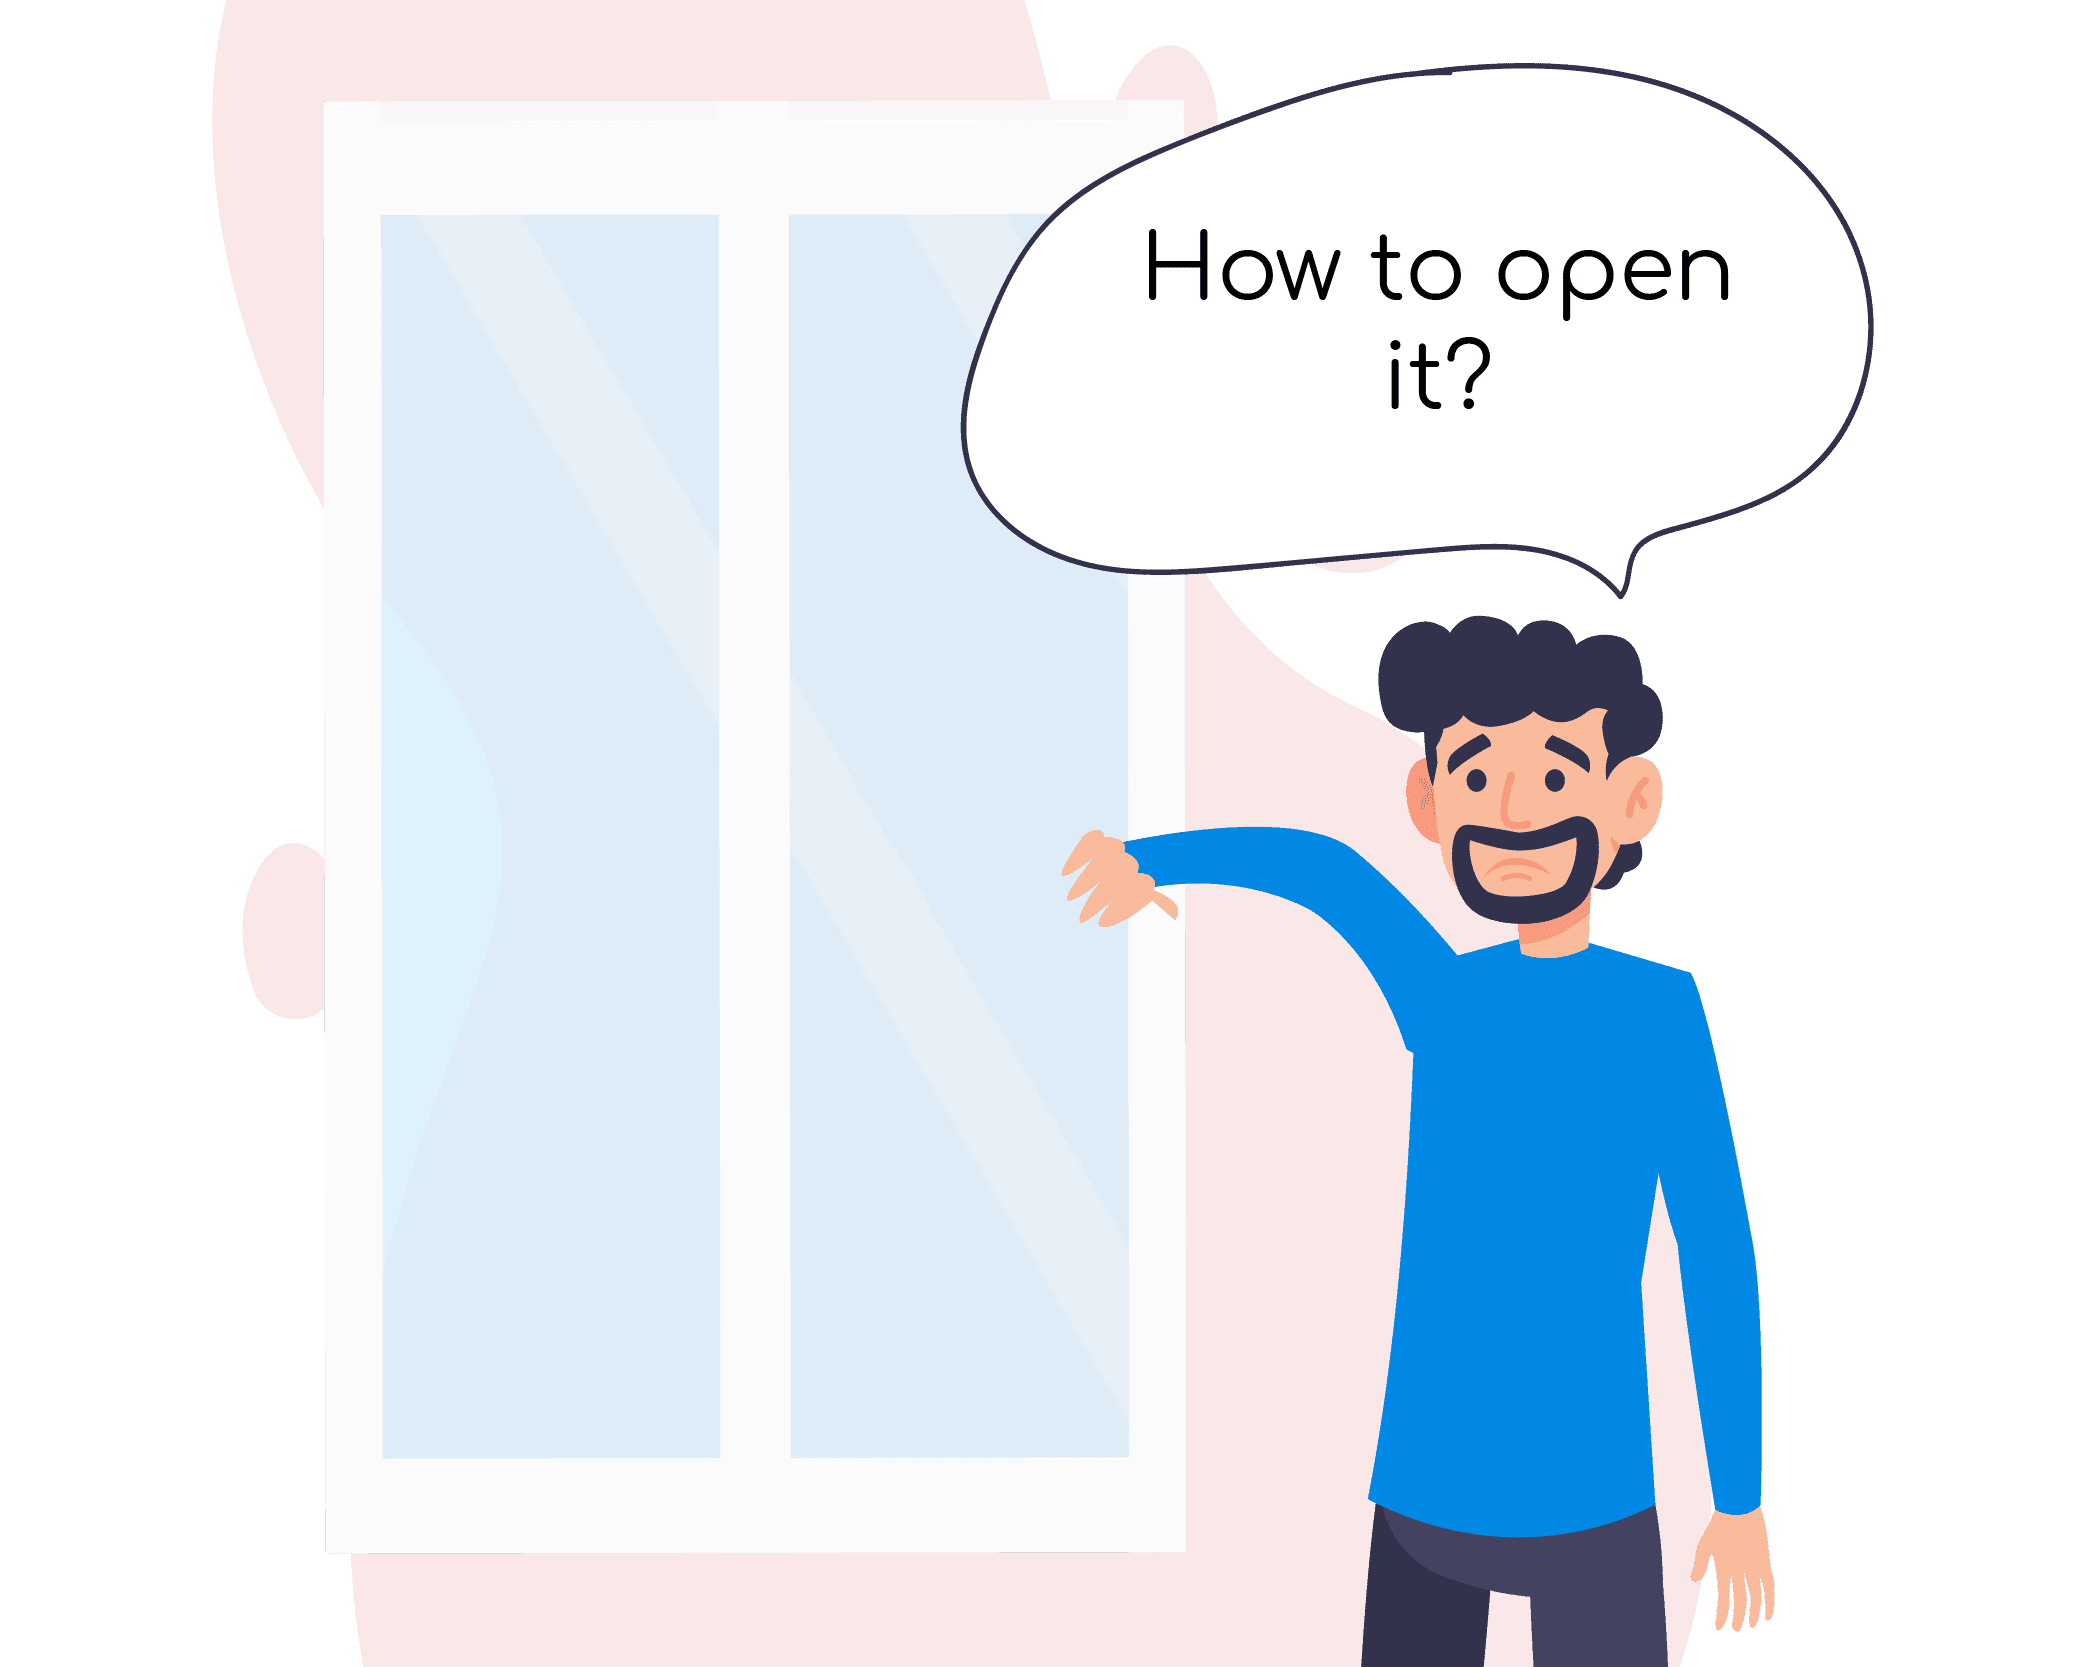 How to open it?